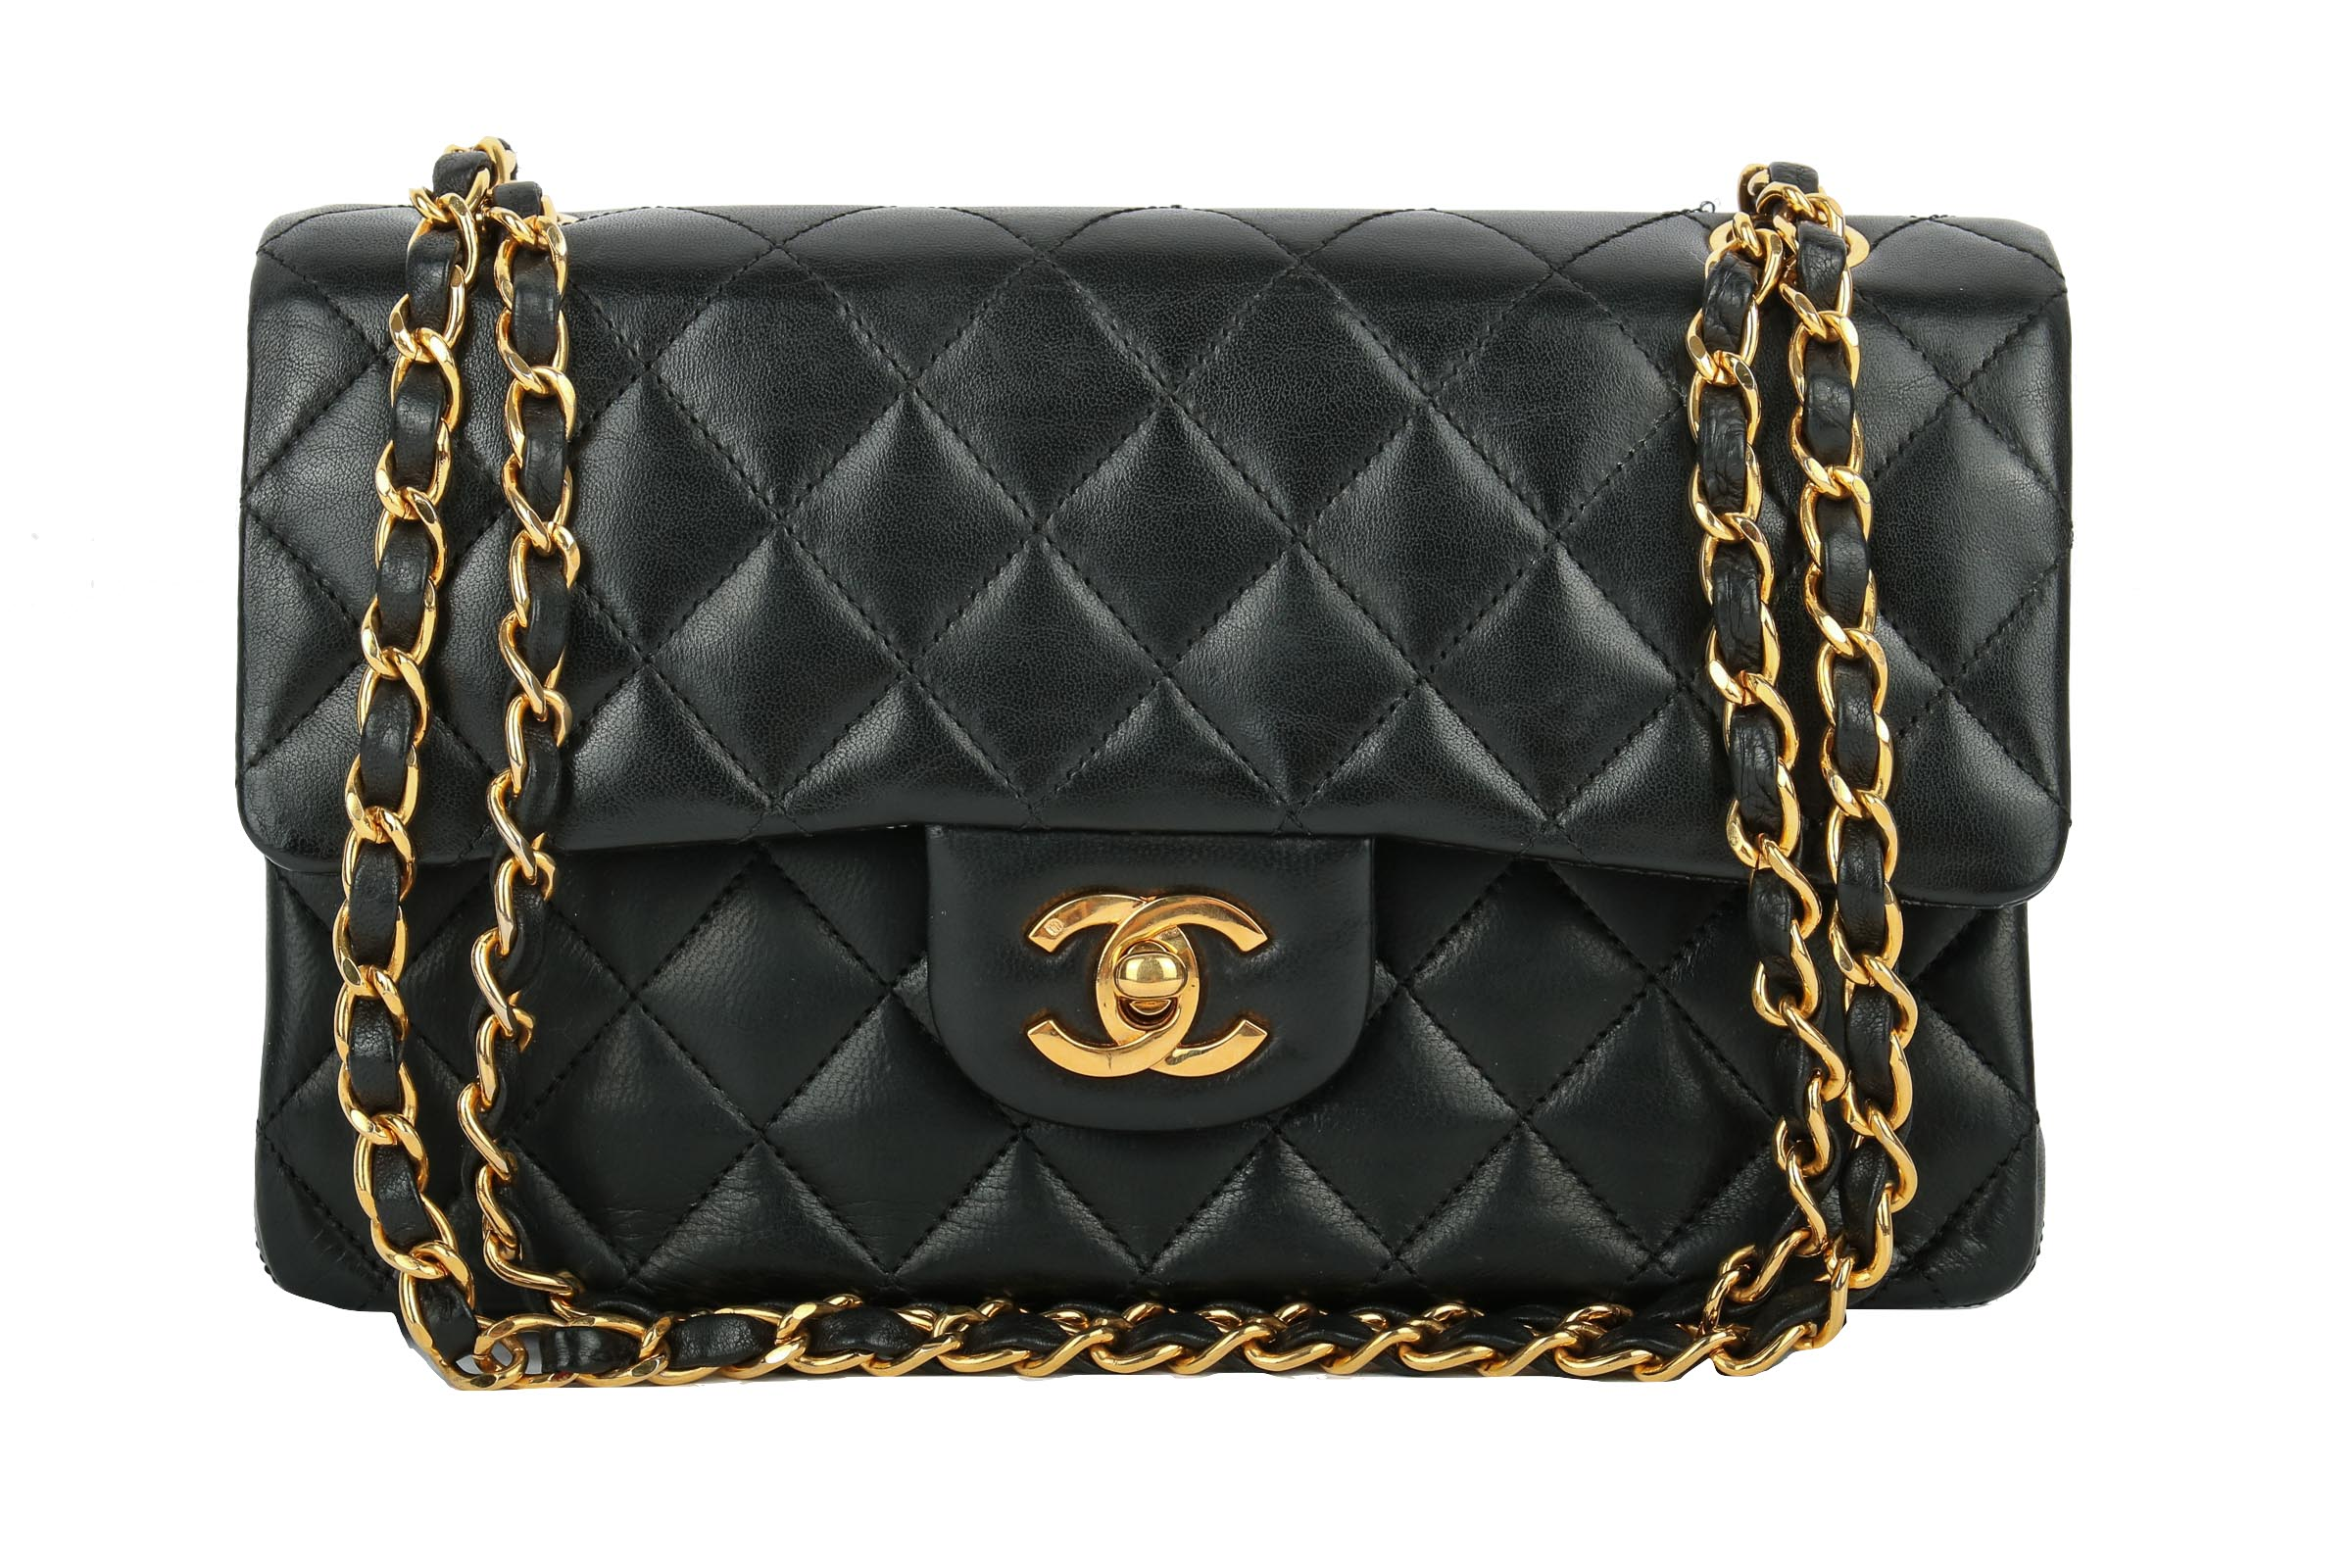 624c286e4a2b9 Chanel Timeless Classic Double Flap Small Black